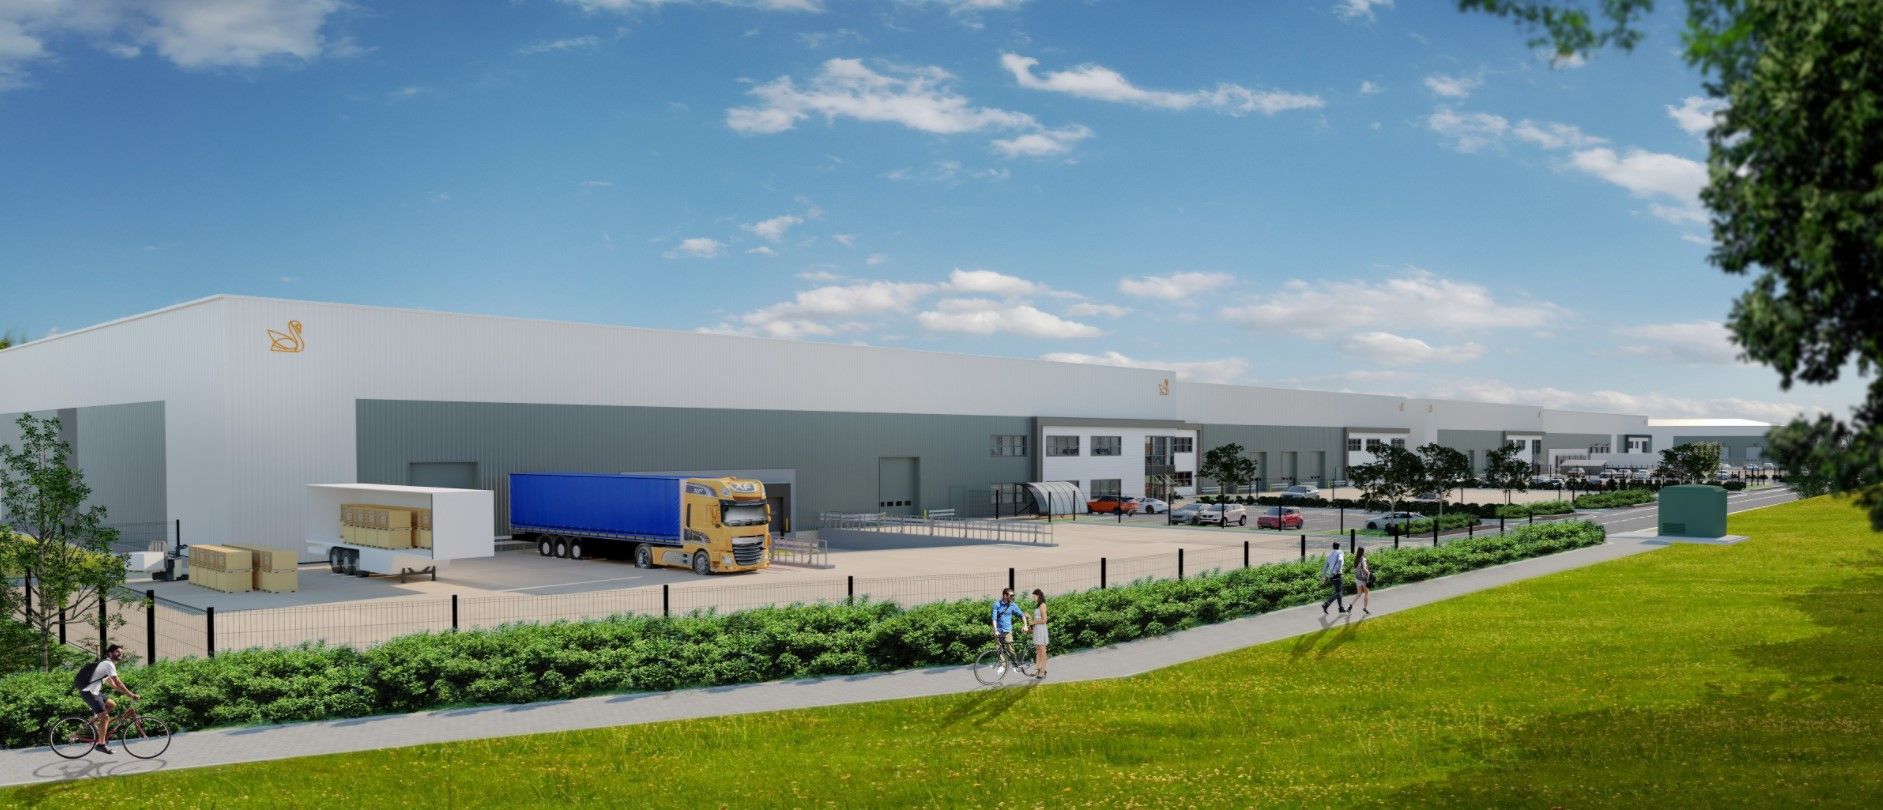 St. Modwen to deliver more than 285,000 sq ft in the Midlands